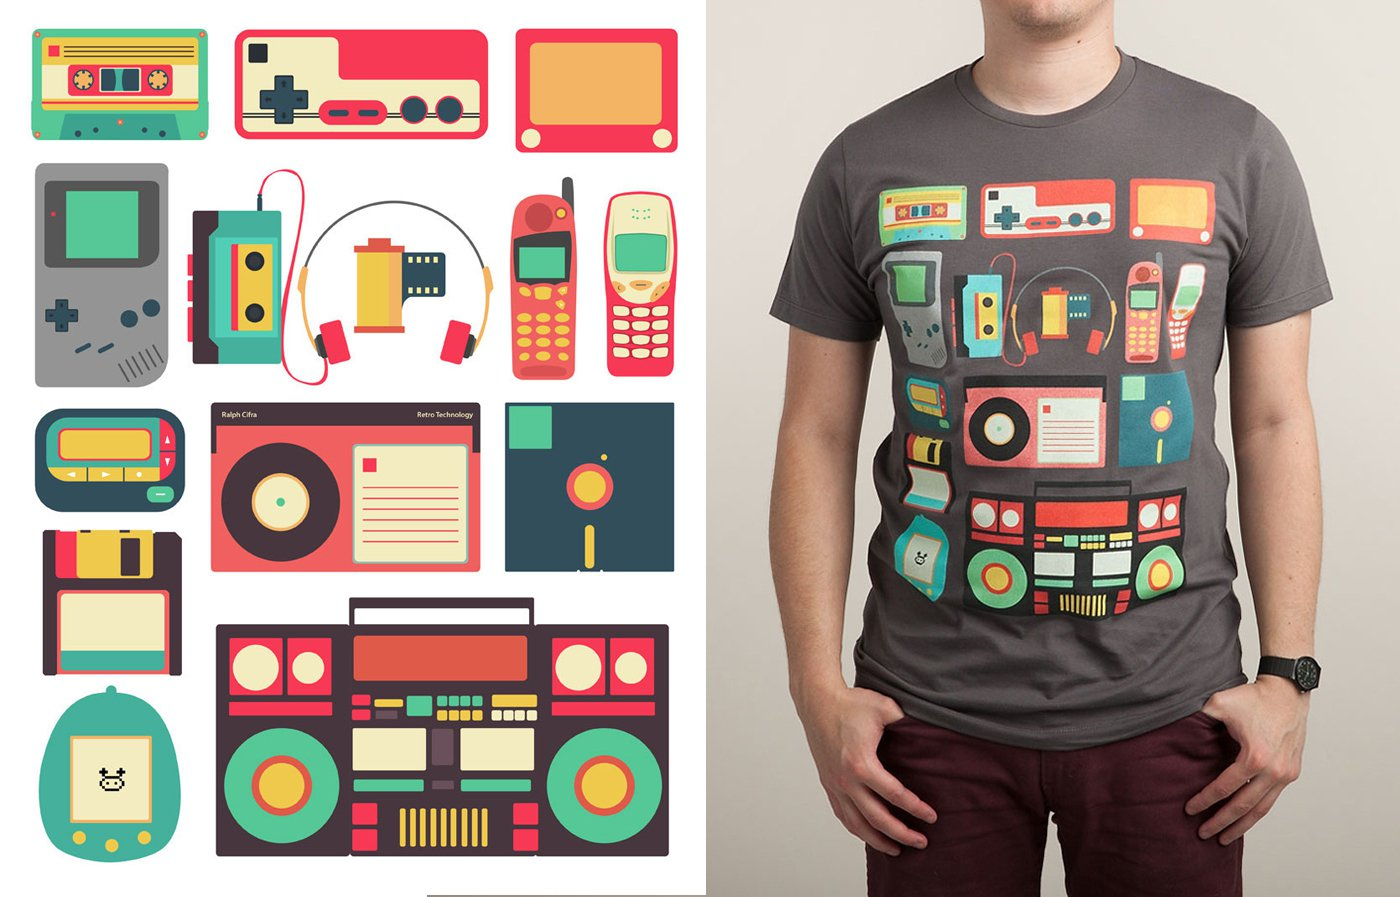 Shirt design examples - The 9 Graphic Design Trends You Need To Be